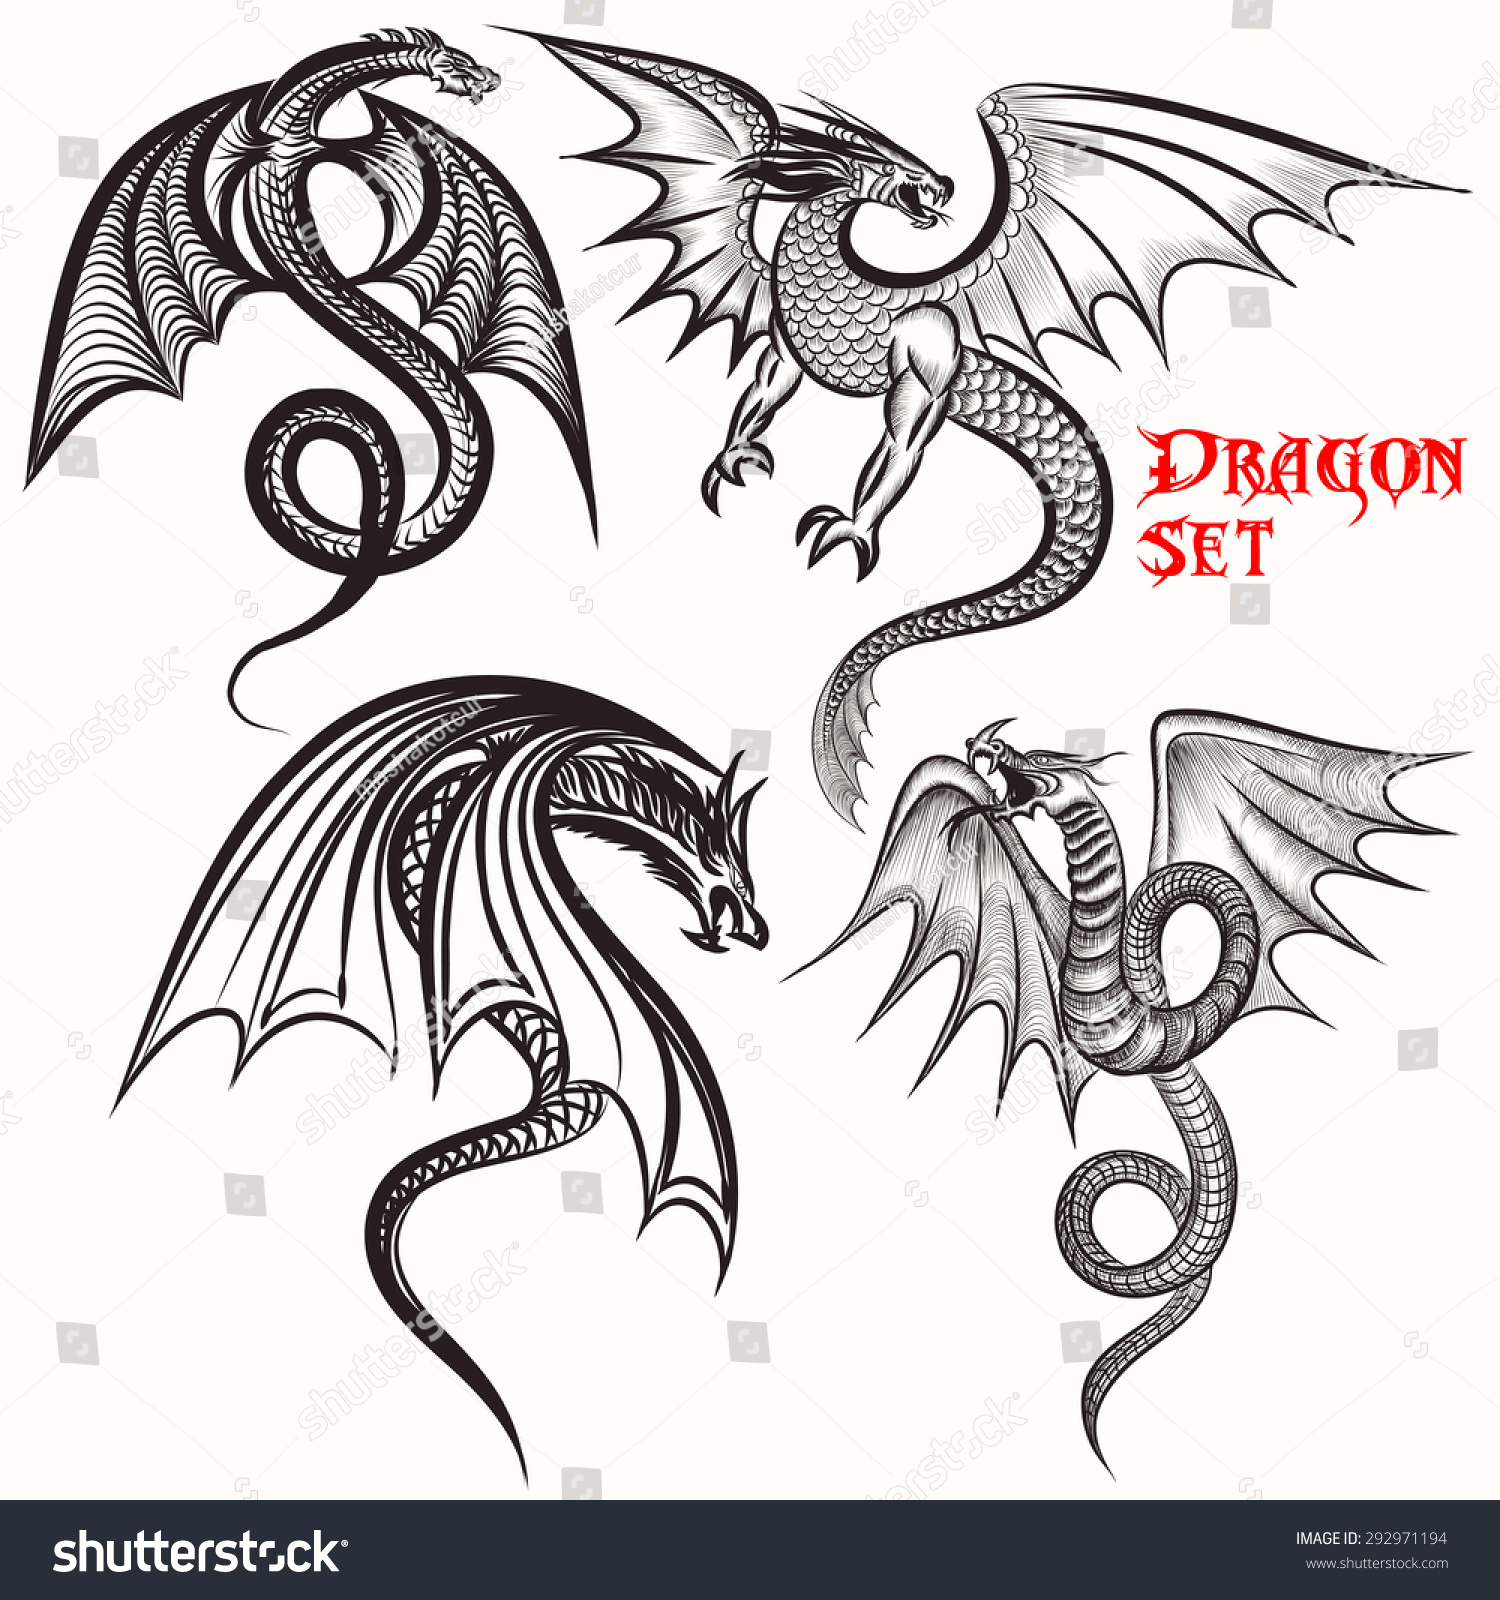 Uncategorized Drawn Dragons tattoo vector set hand drawn dragons stock 292971194 for design